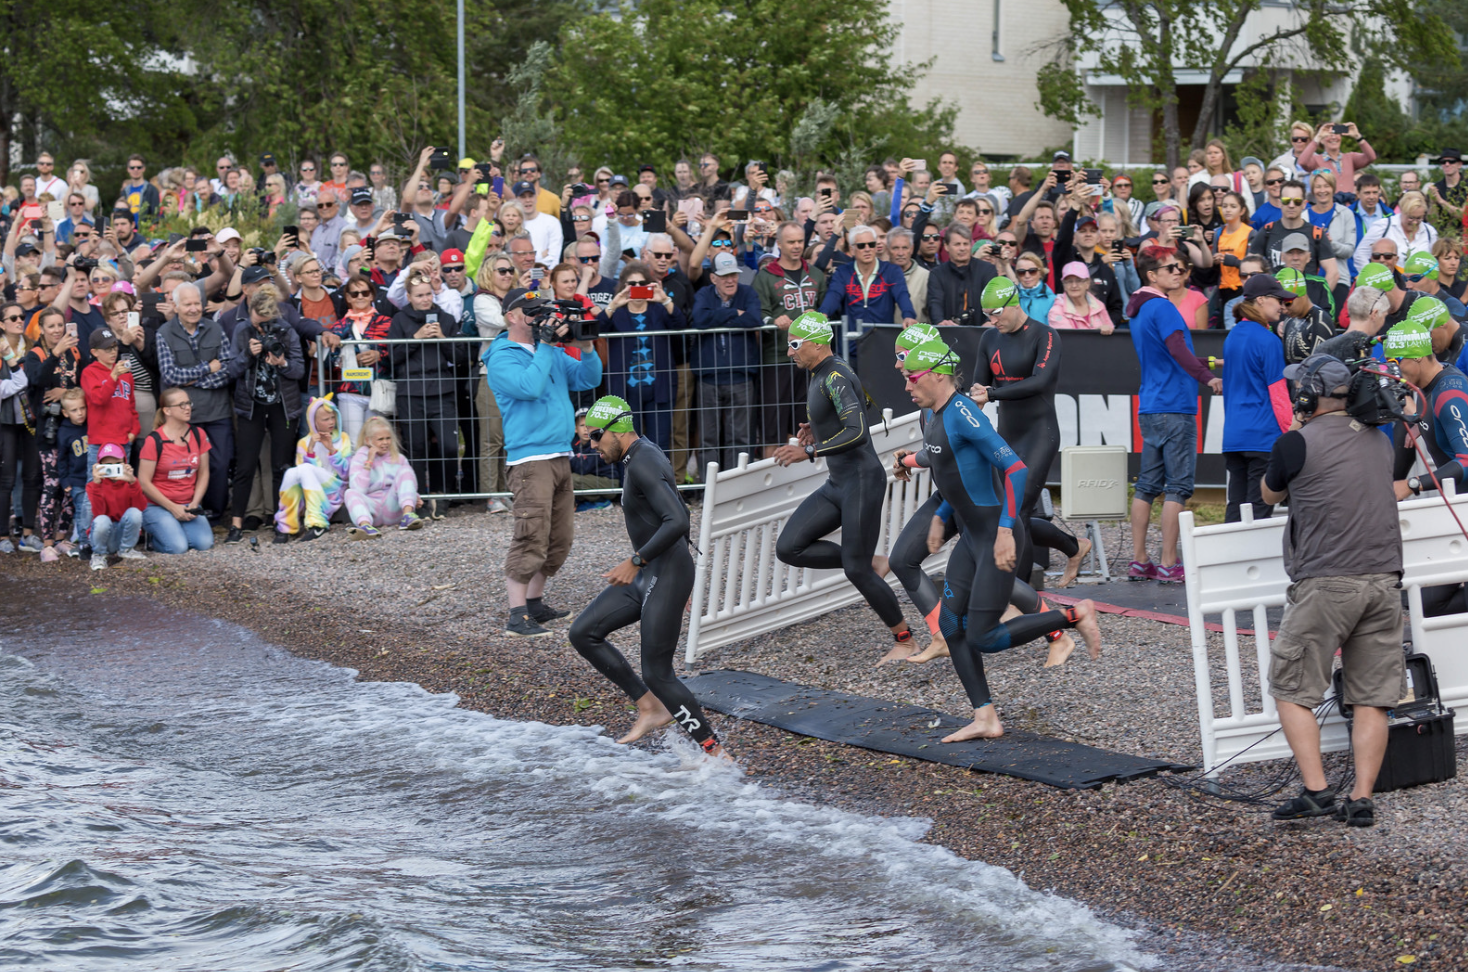 In the world's happiest country, Finland, triathletes run into Lake Vesijärvi for their Ironman Swimming Competition, June 29, 2019 (Photo by Marco Verch) Creative Commons license via Flickr